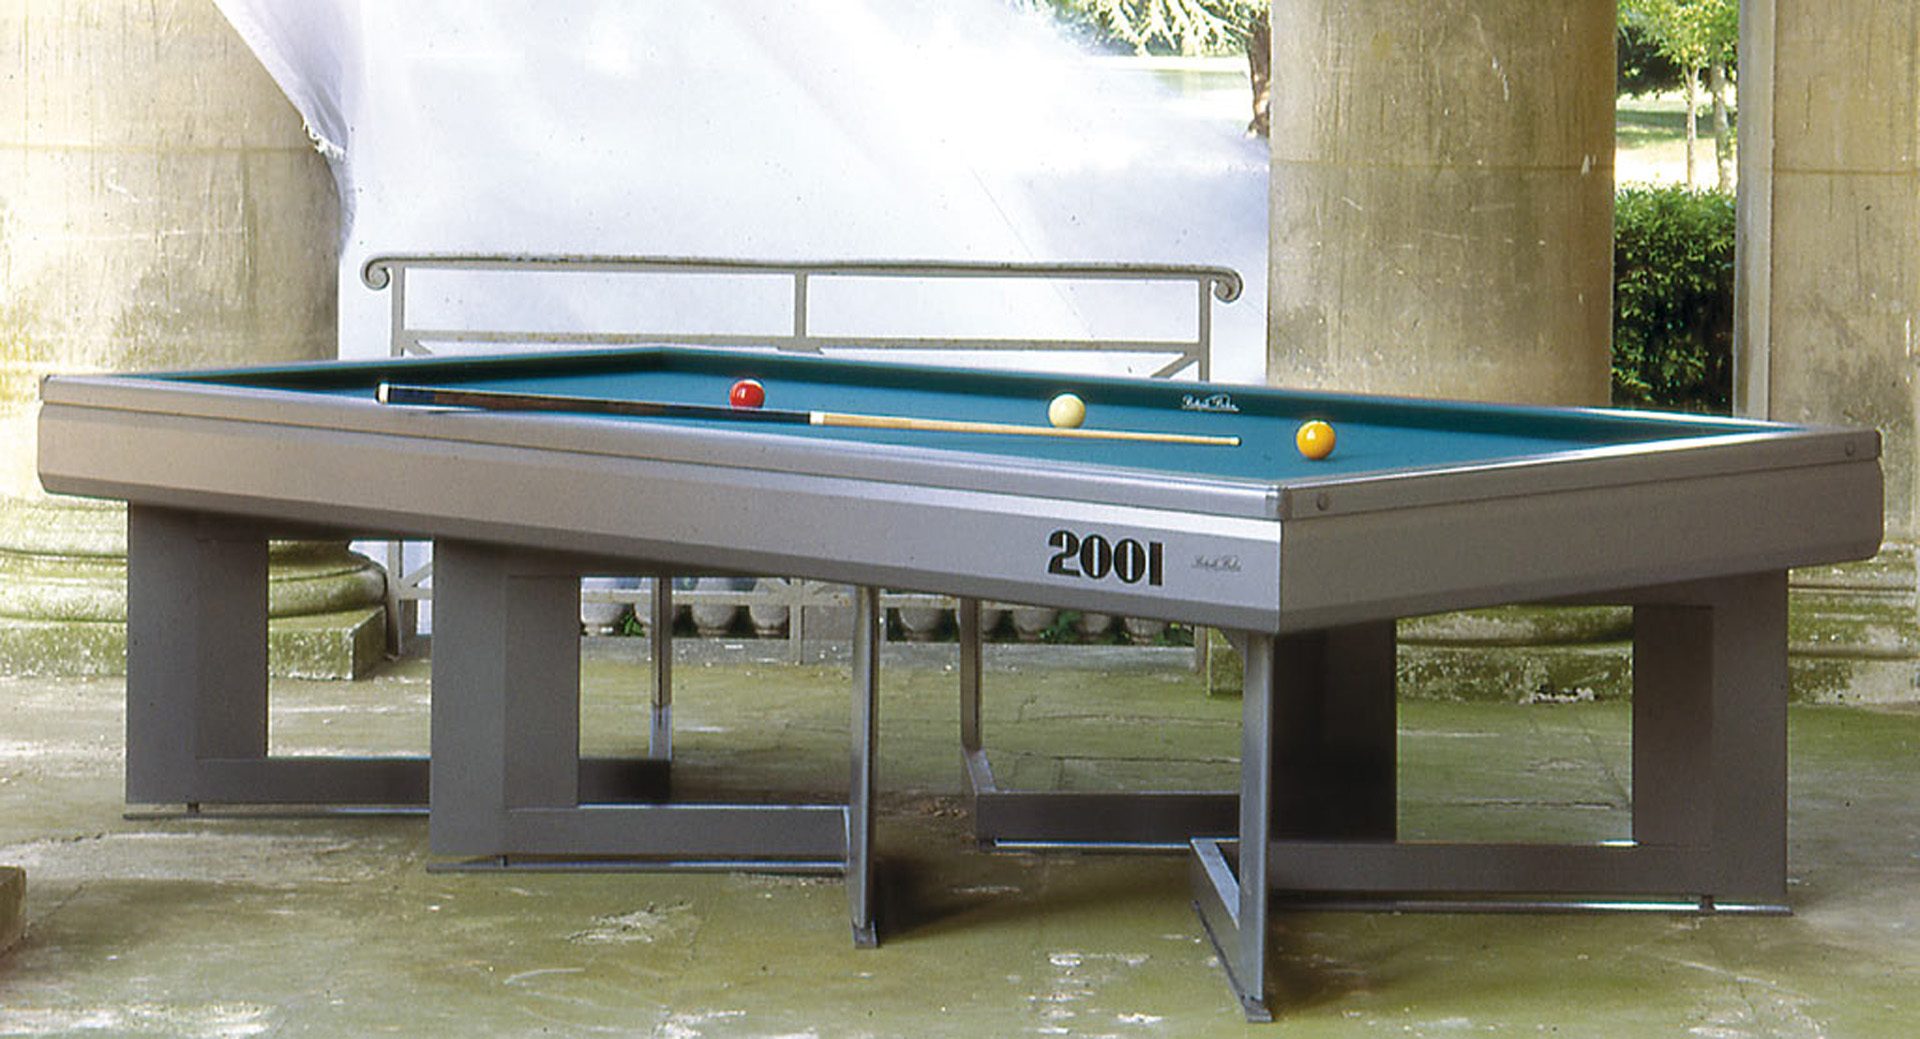 Table de billard 2001 de Billards Breton